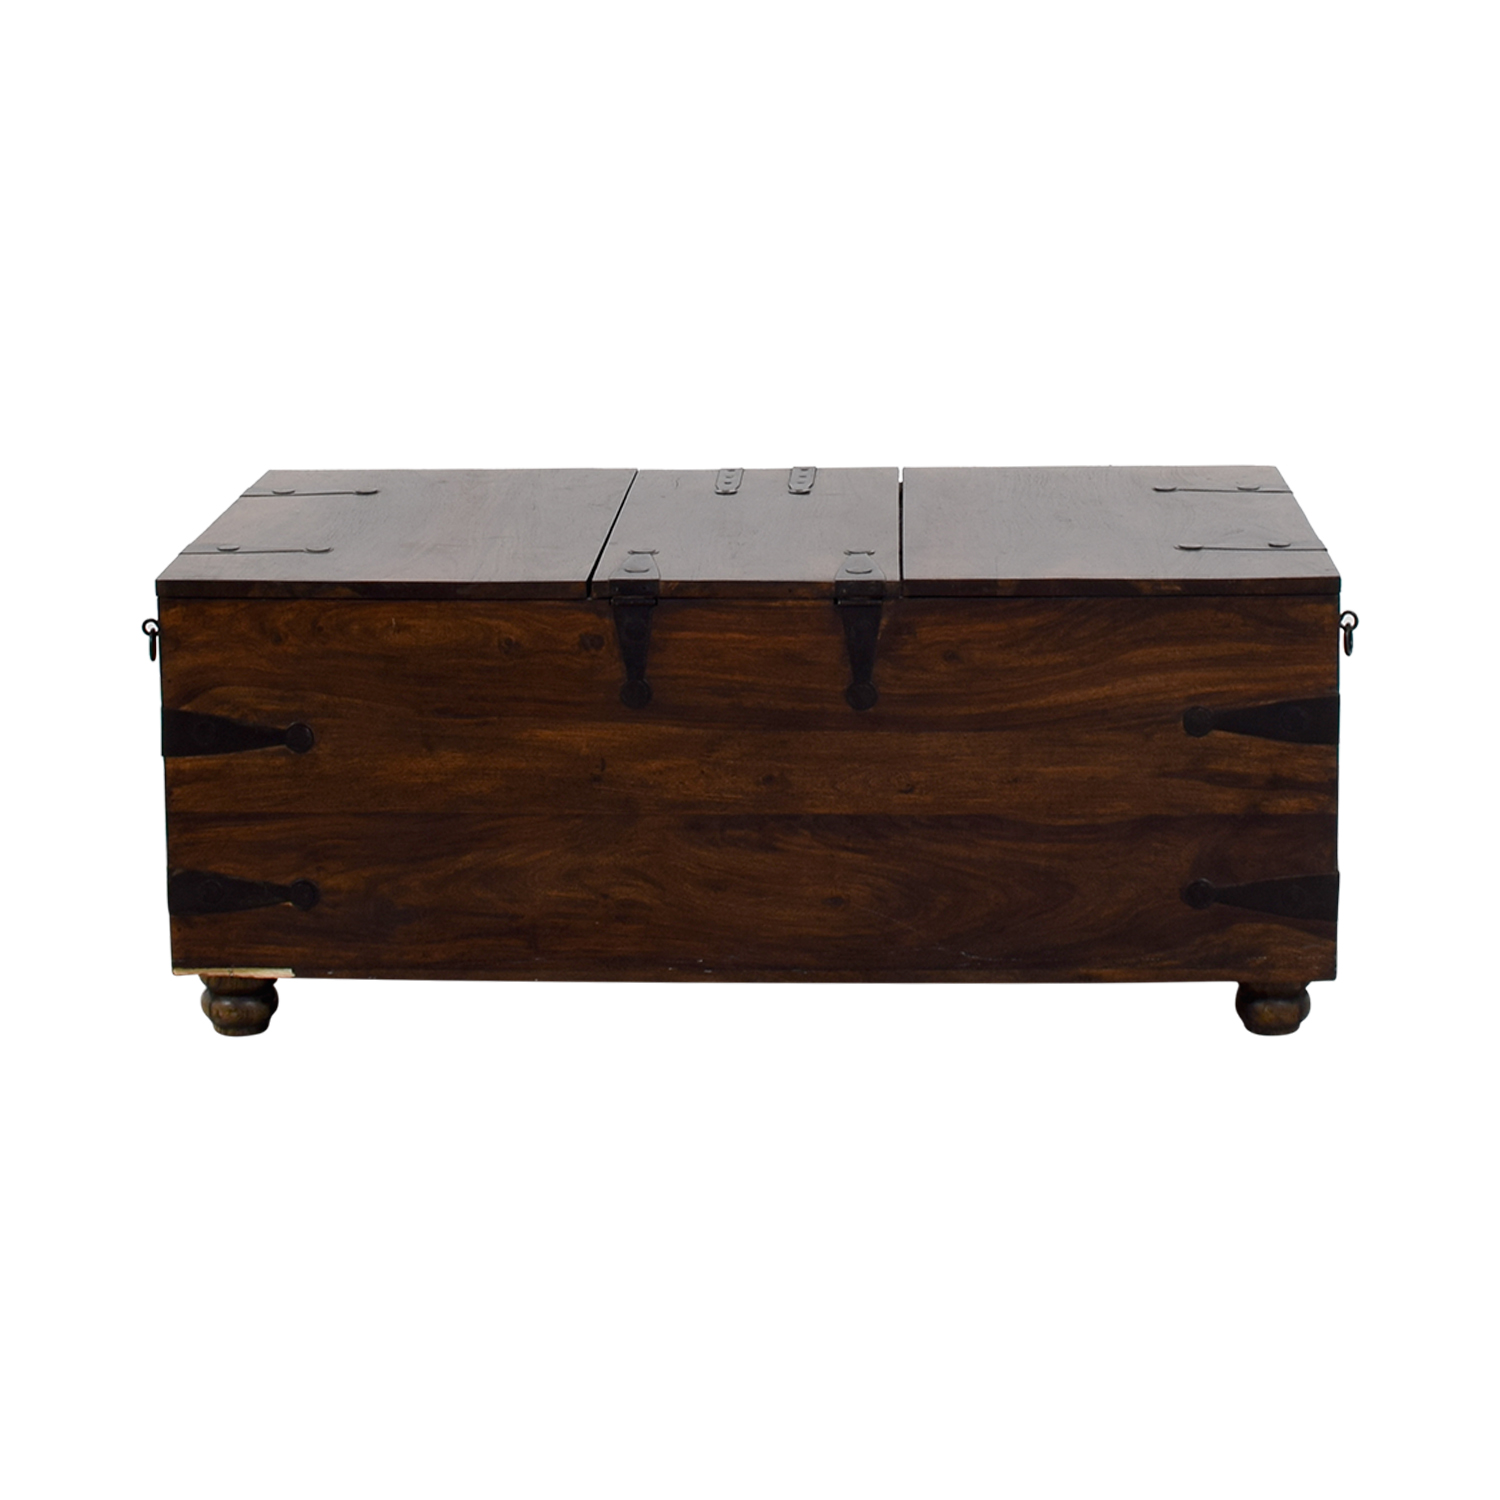 Quality Of Crate And Barrel Furniture: Crate And Barrel Storage Coffee Table